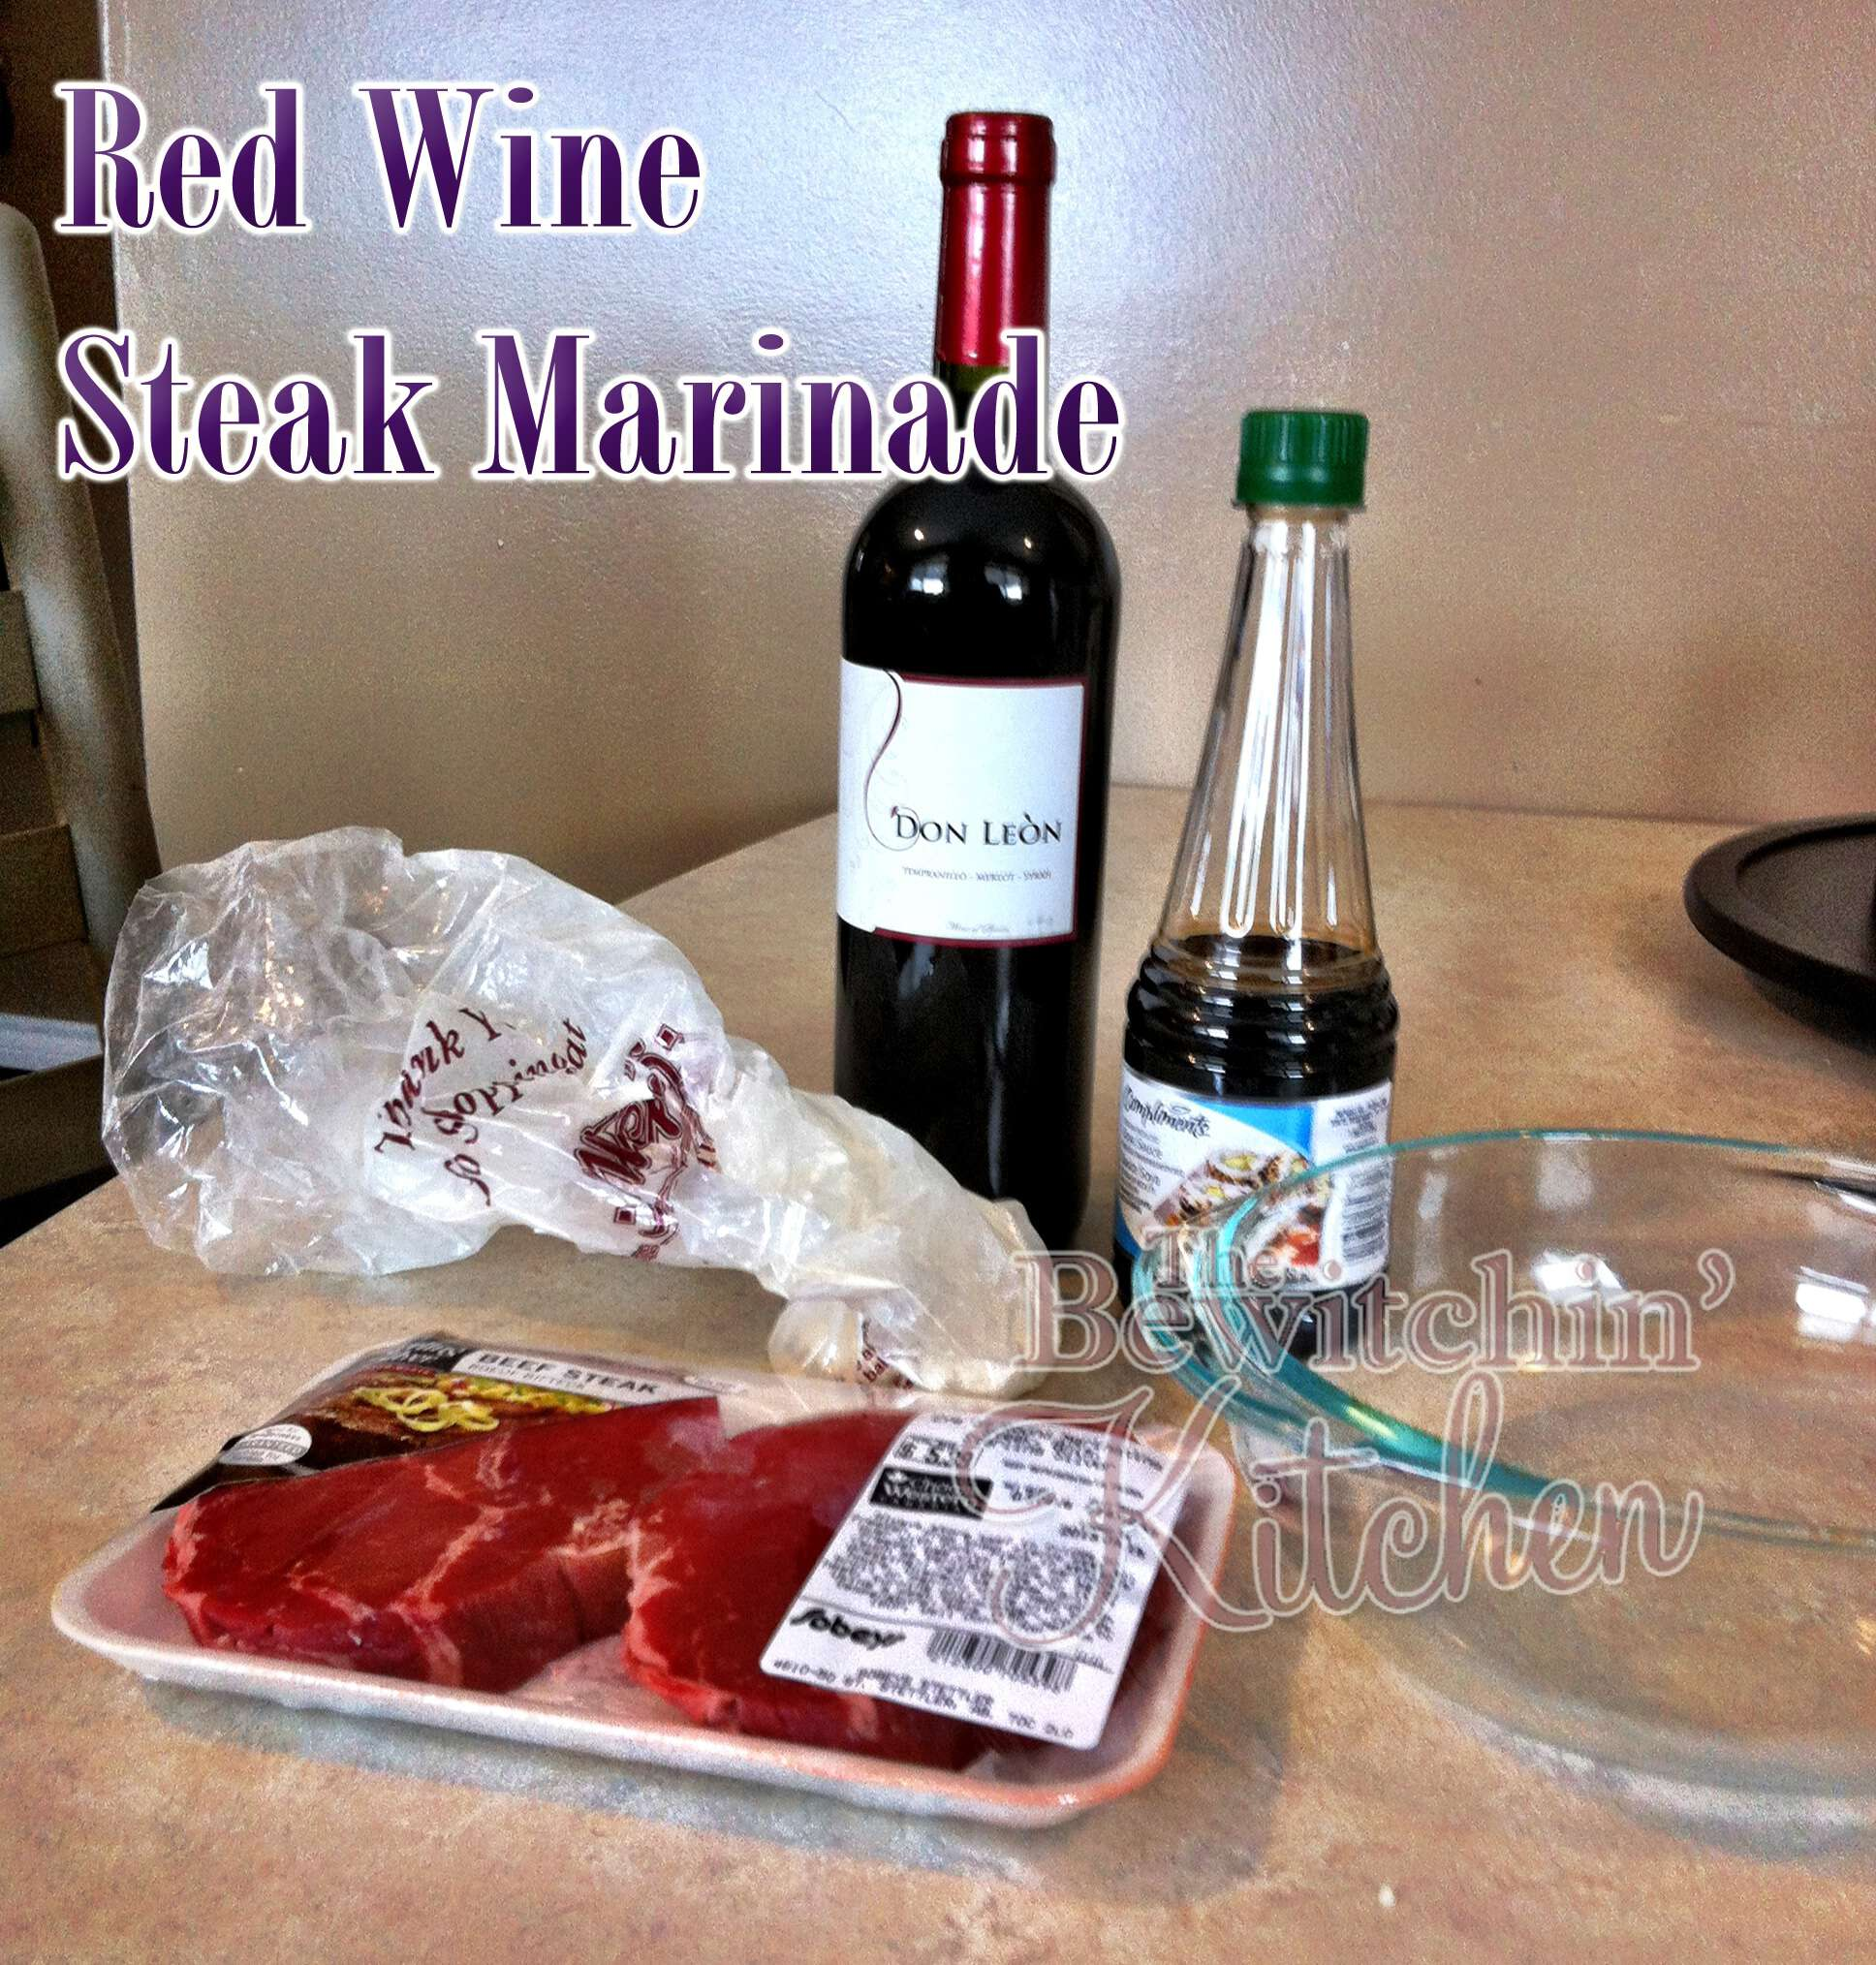 Red wine steak marinade - the only marinade recipe you'll need for your BBQ.